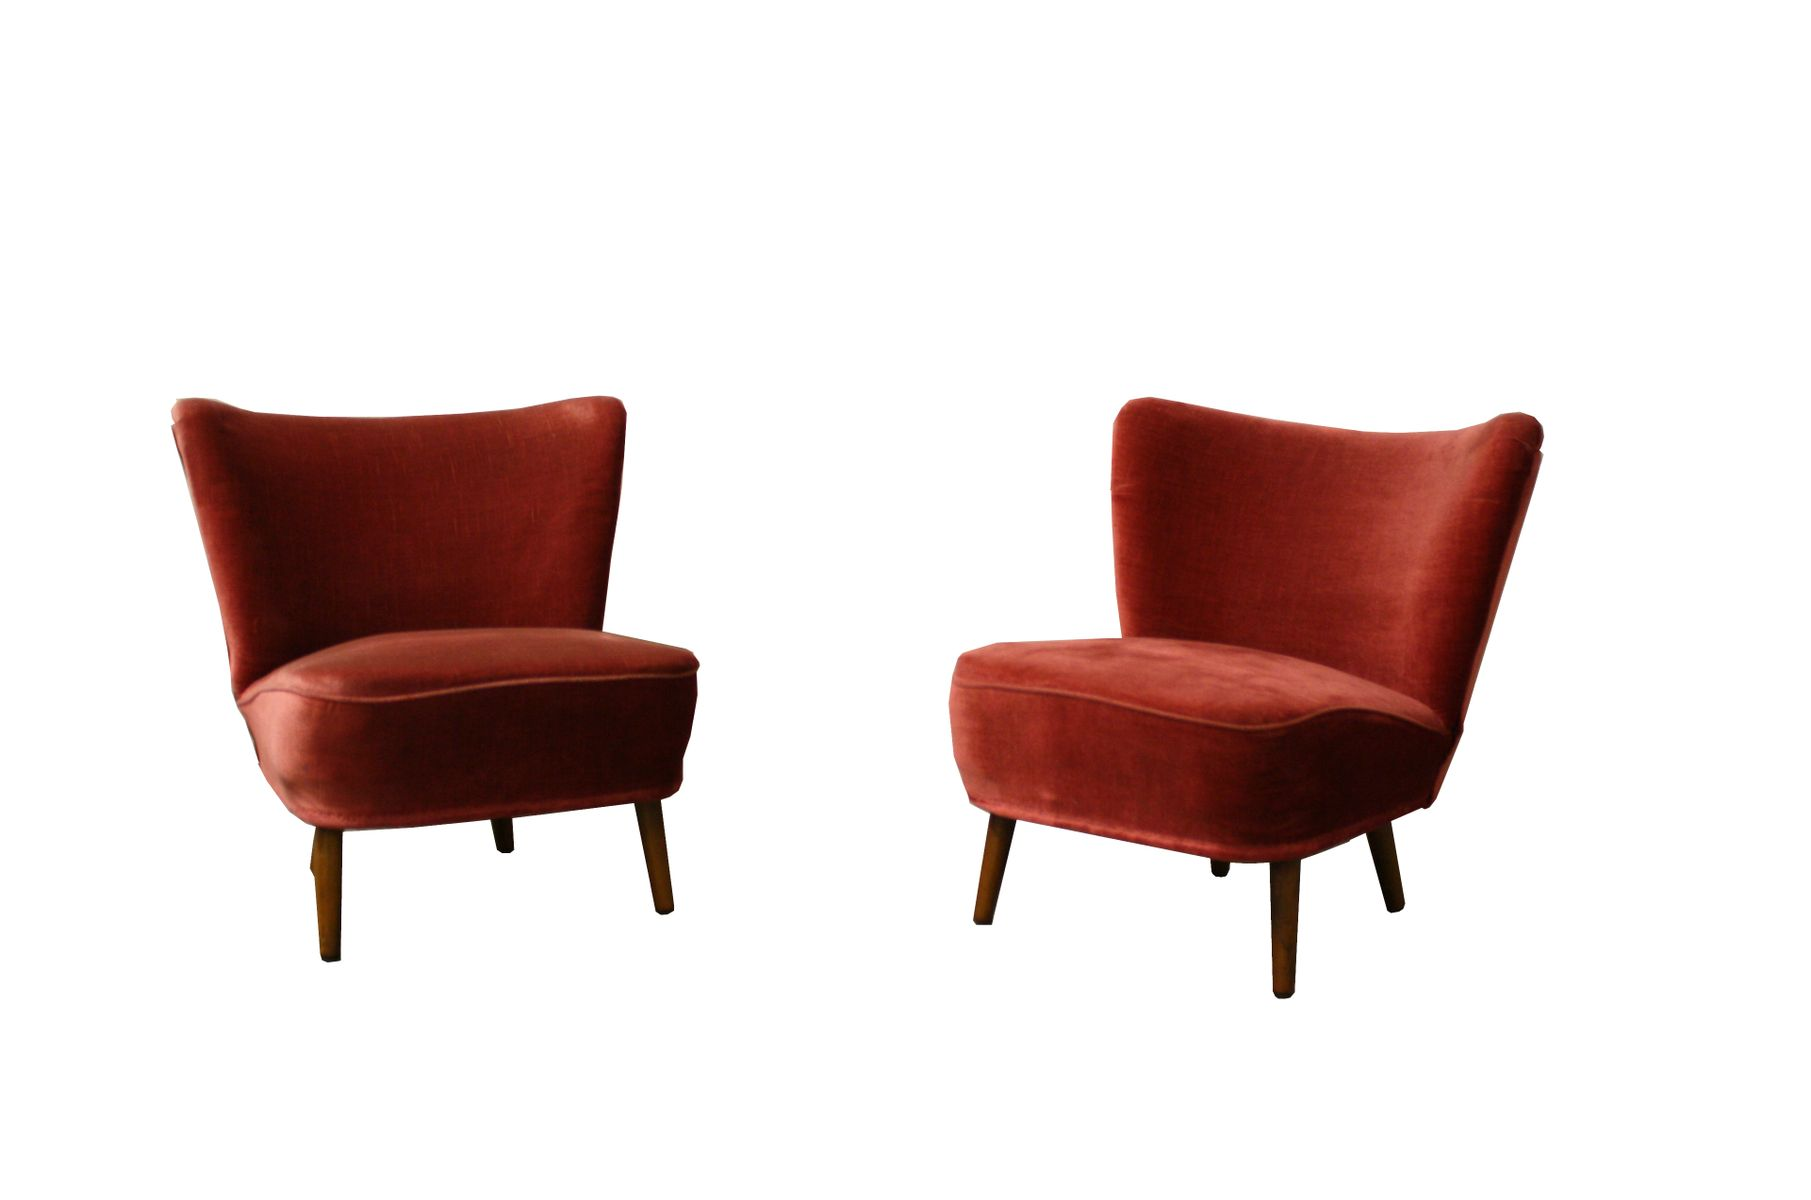 Vintage Red Fabric Cocktail Chairs, 1960s, Set Of 2